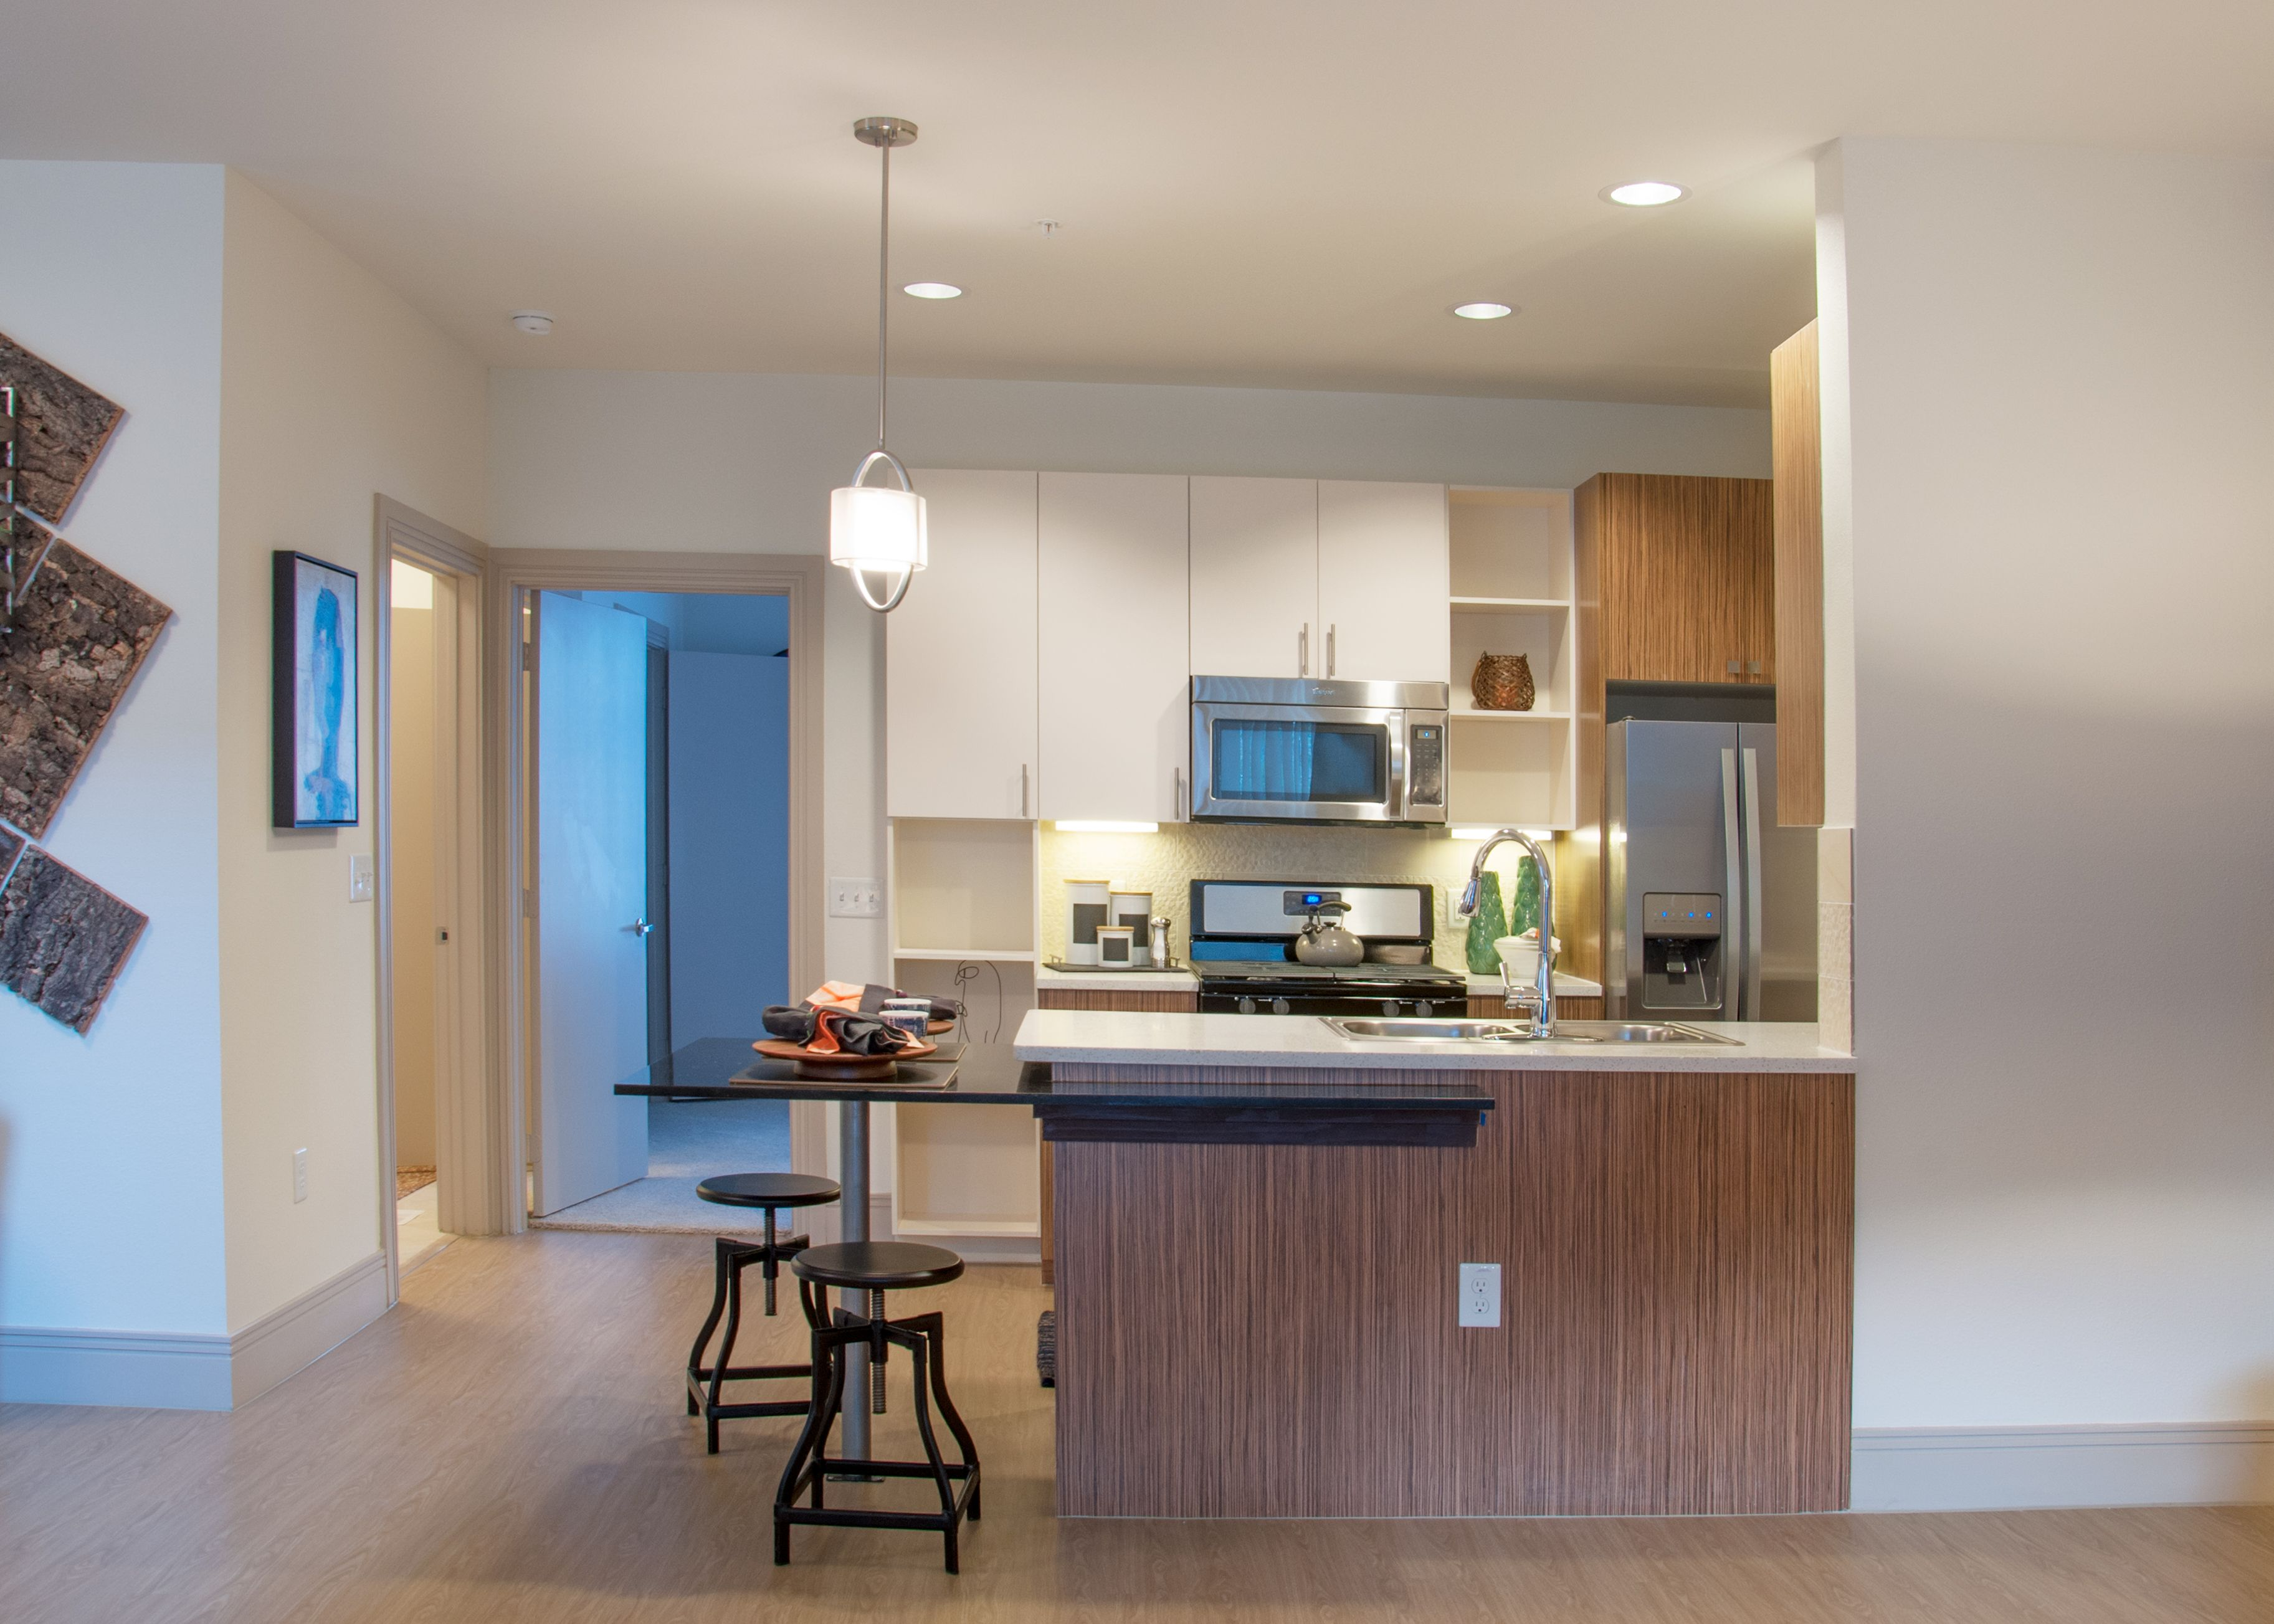 T2 Kitchens At Cielo South Lamar Feature Stainless Steel Appliances With A Gas Range And Quartz Countertops Interior Countertops Quartz Countertops